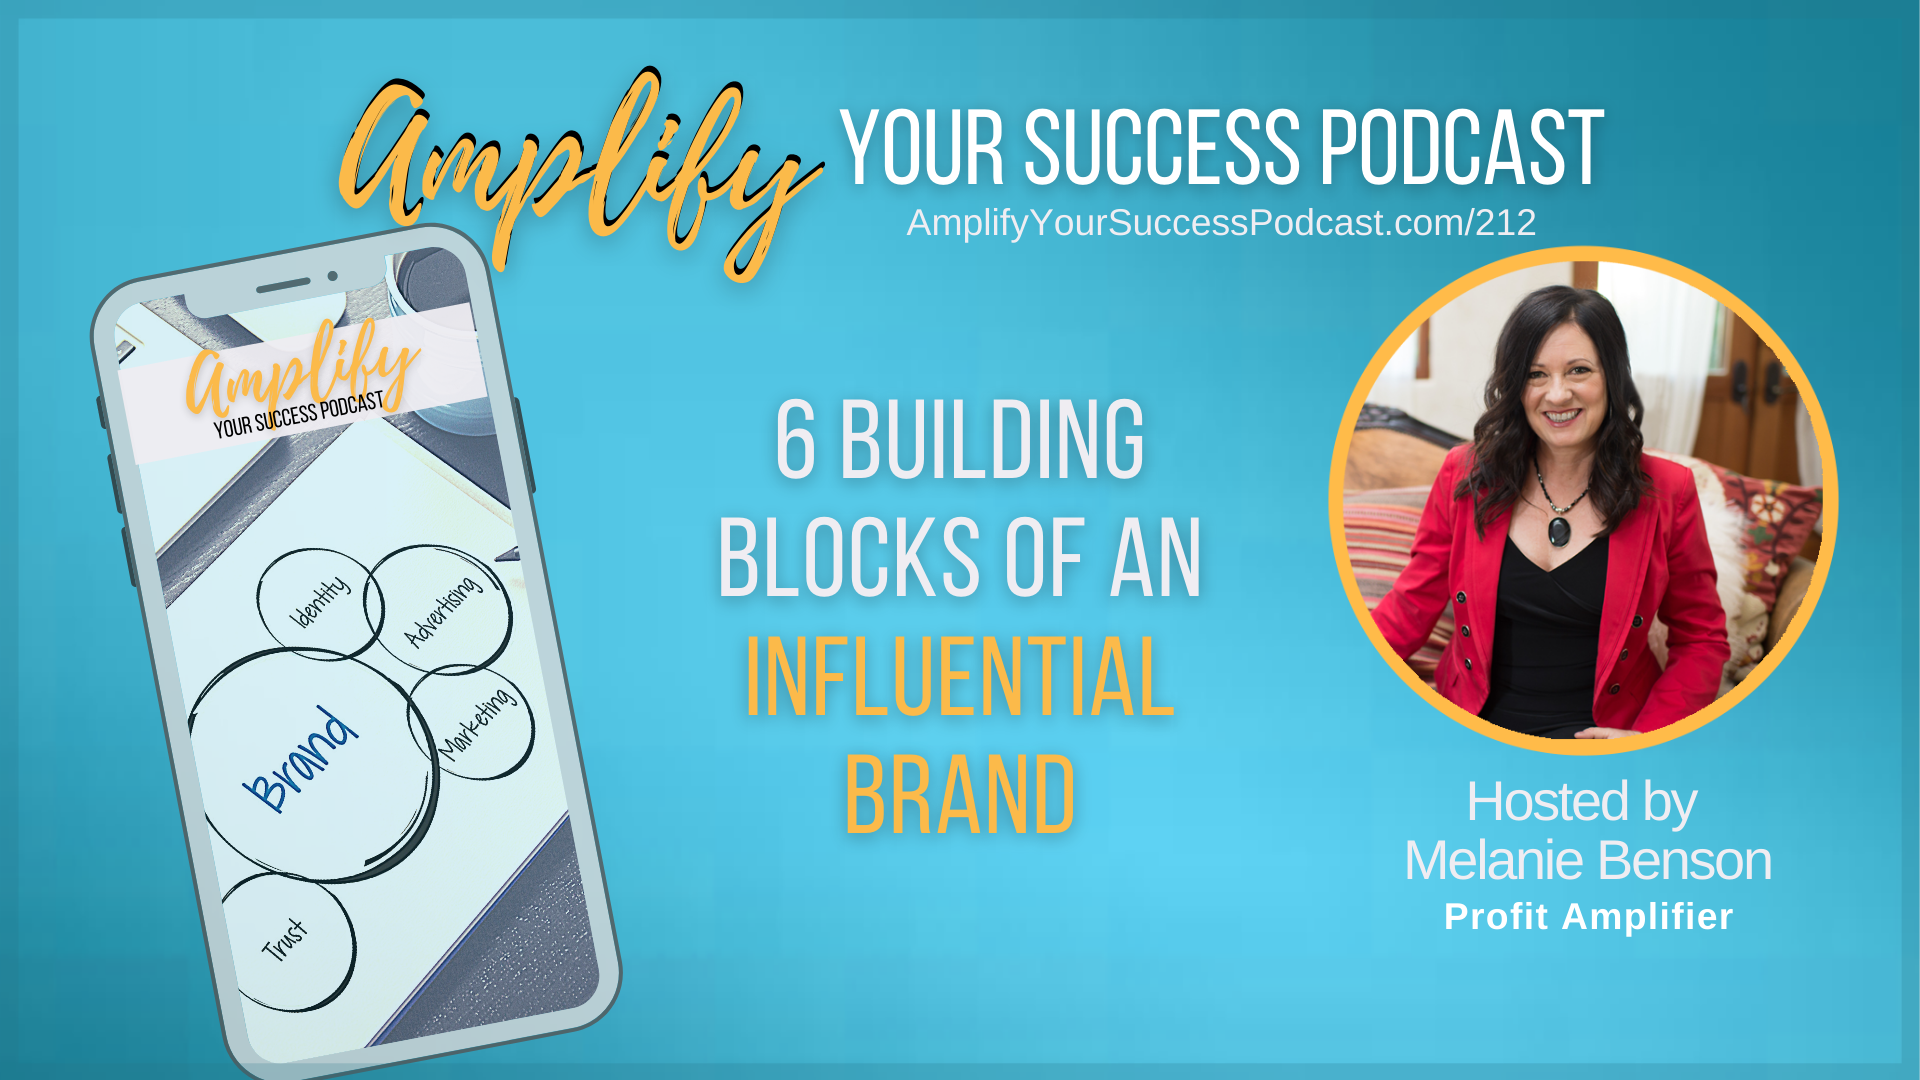 Six Building Blocks of an Influential Brand